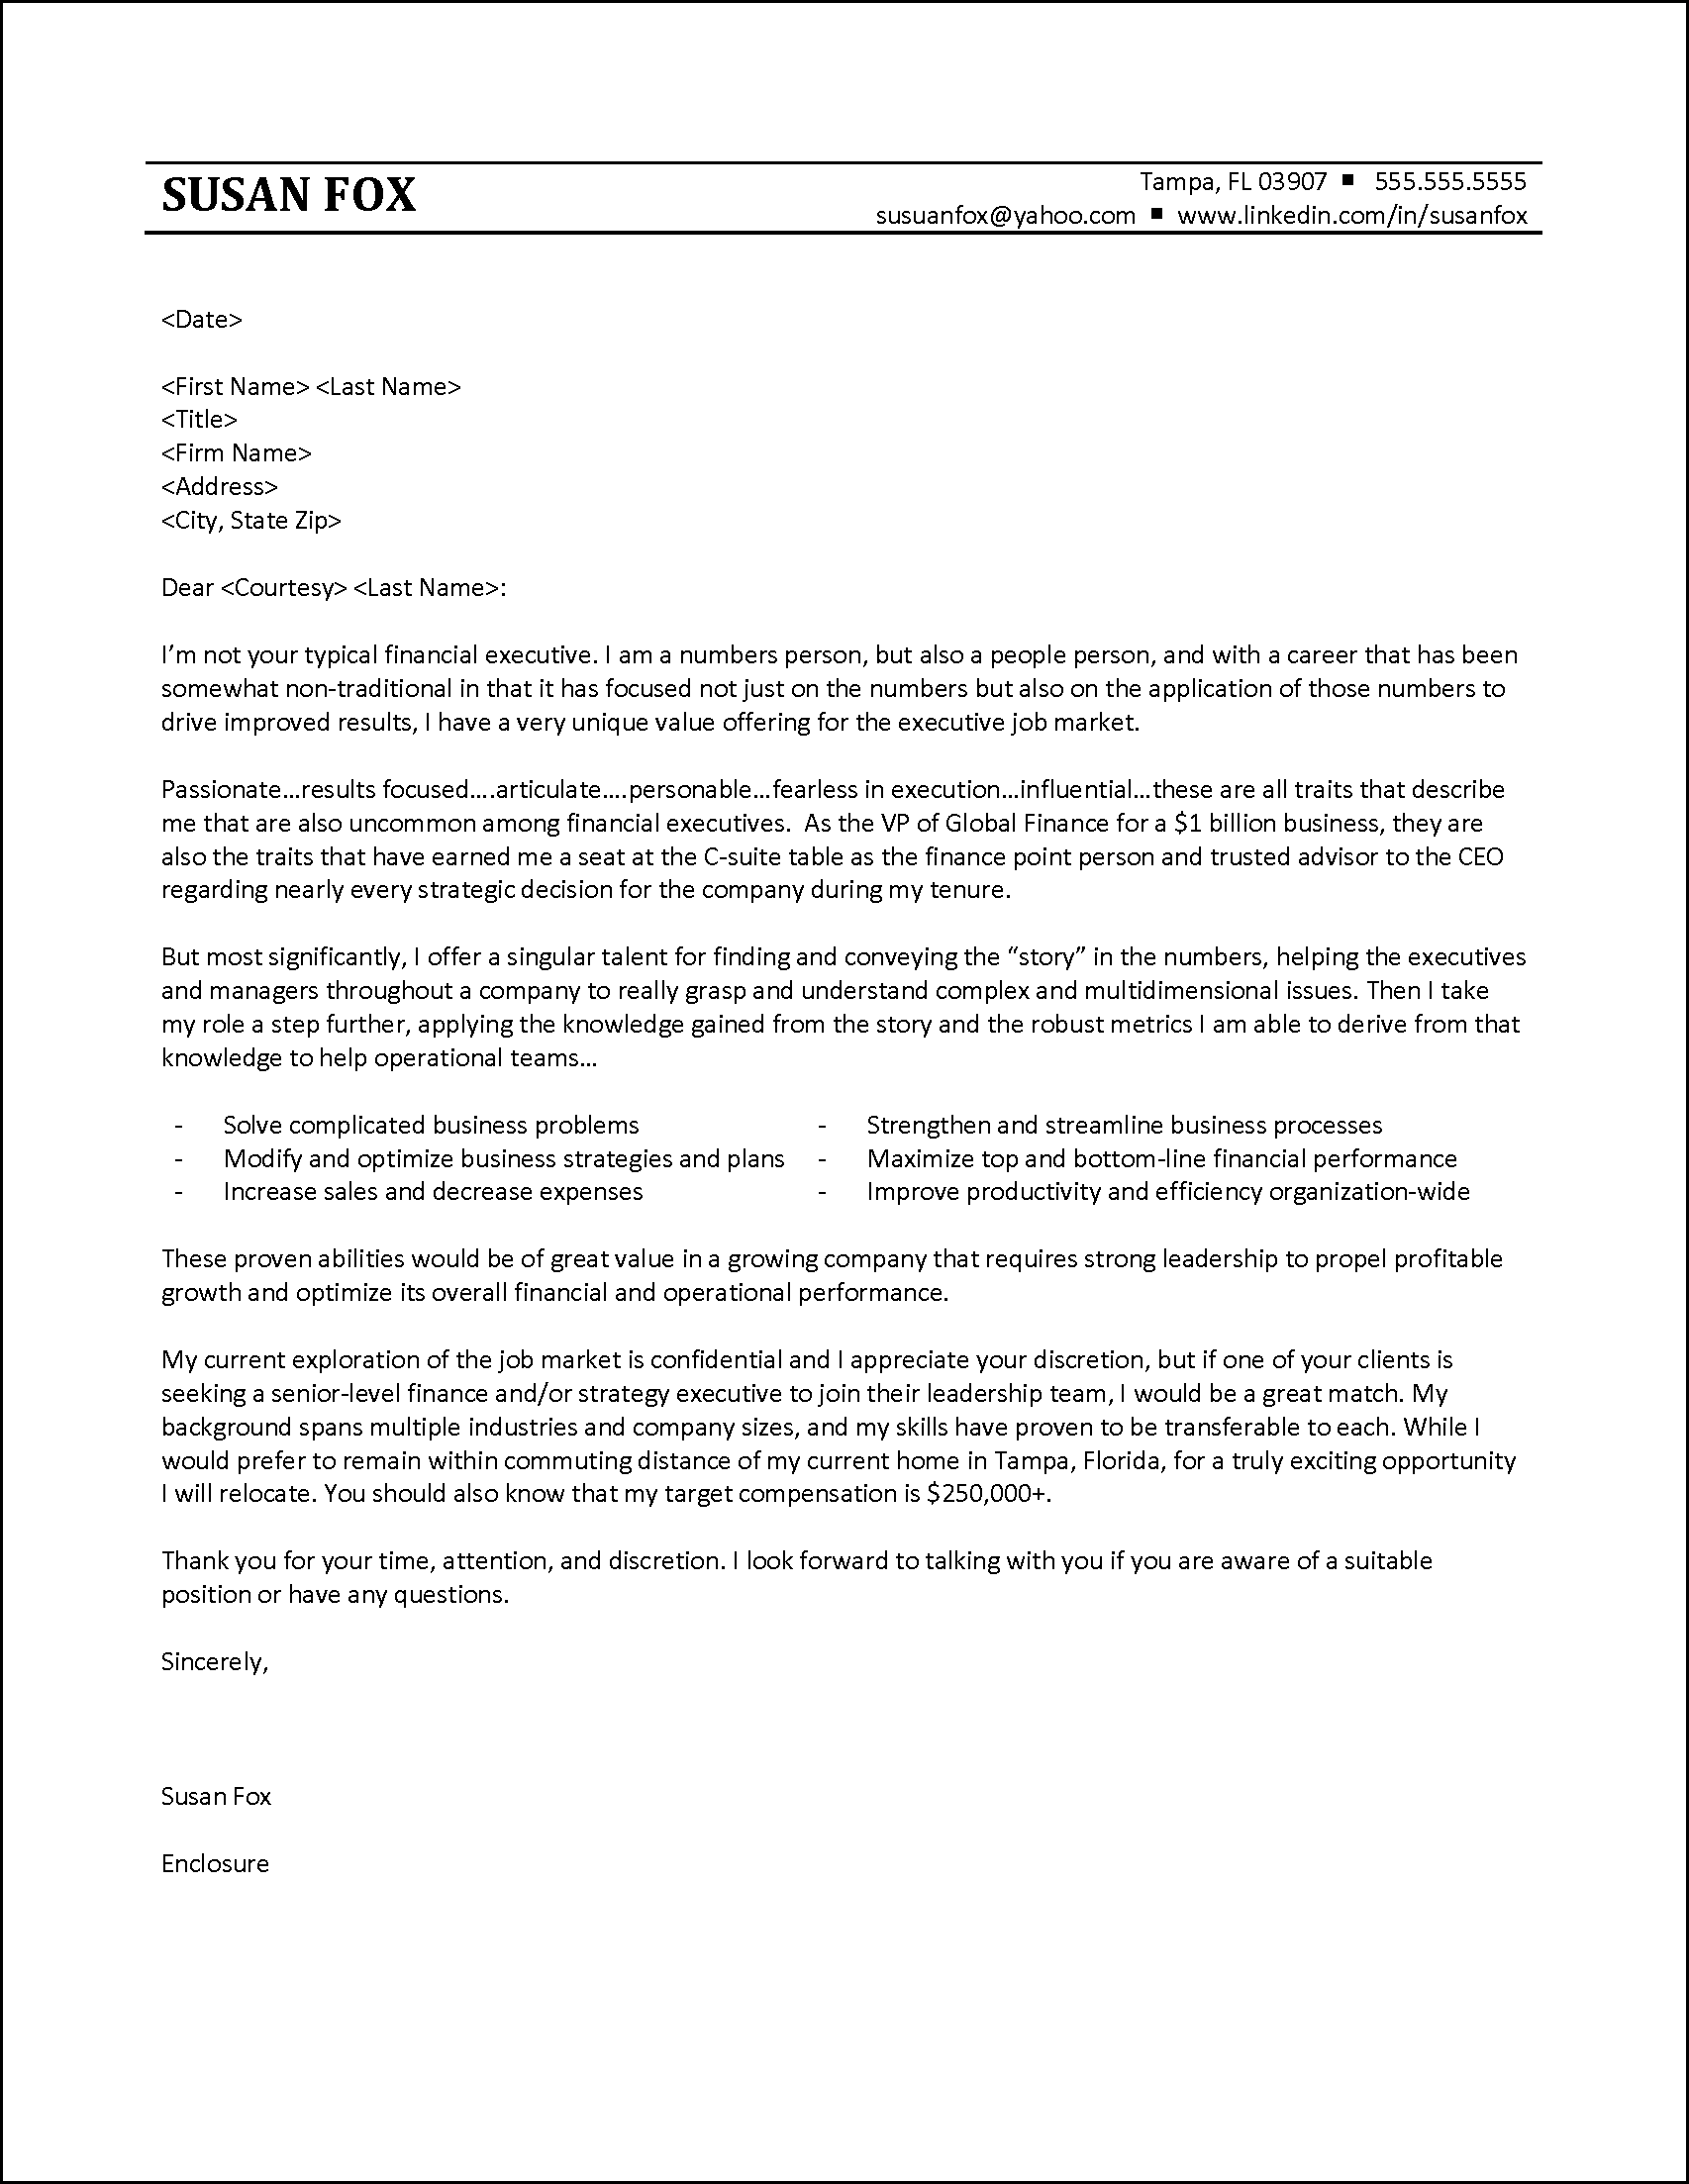 Example Cover Letter To Executive Recruiter